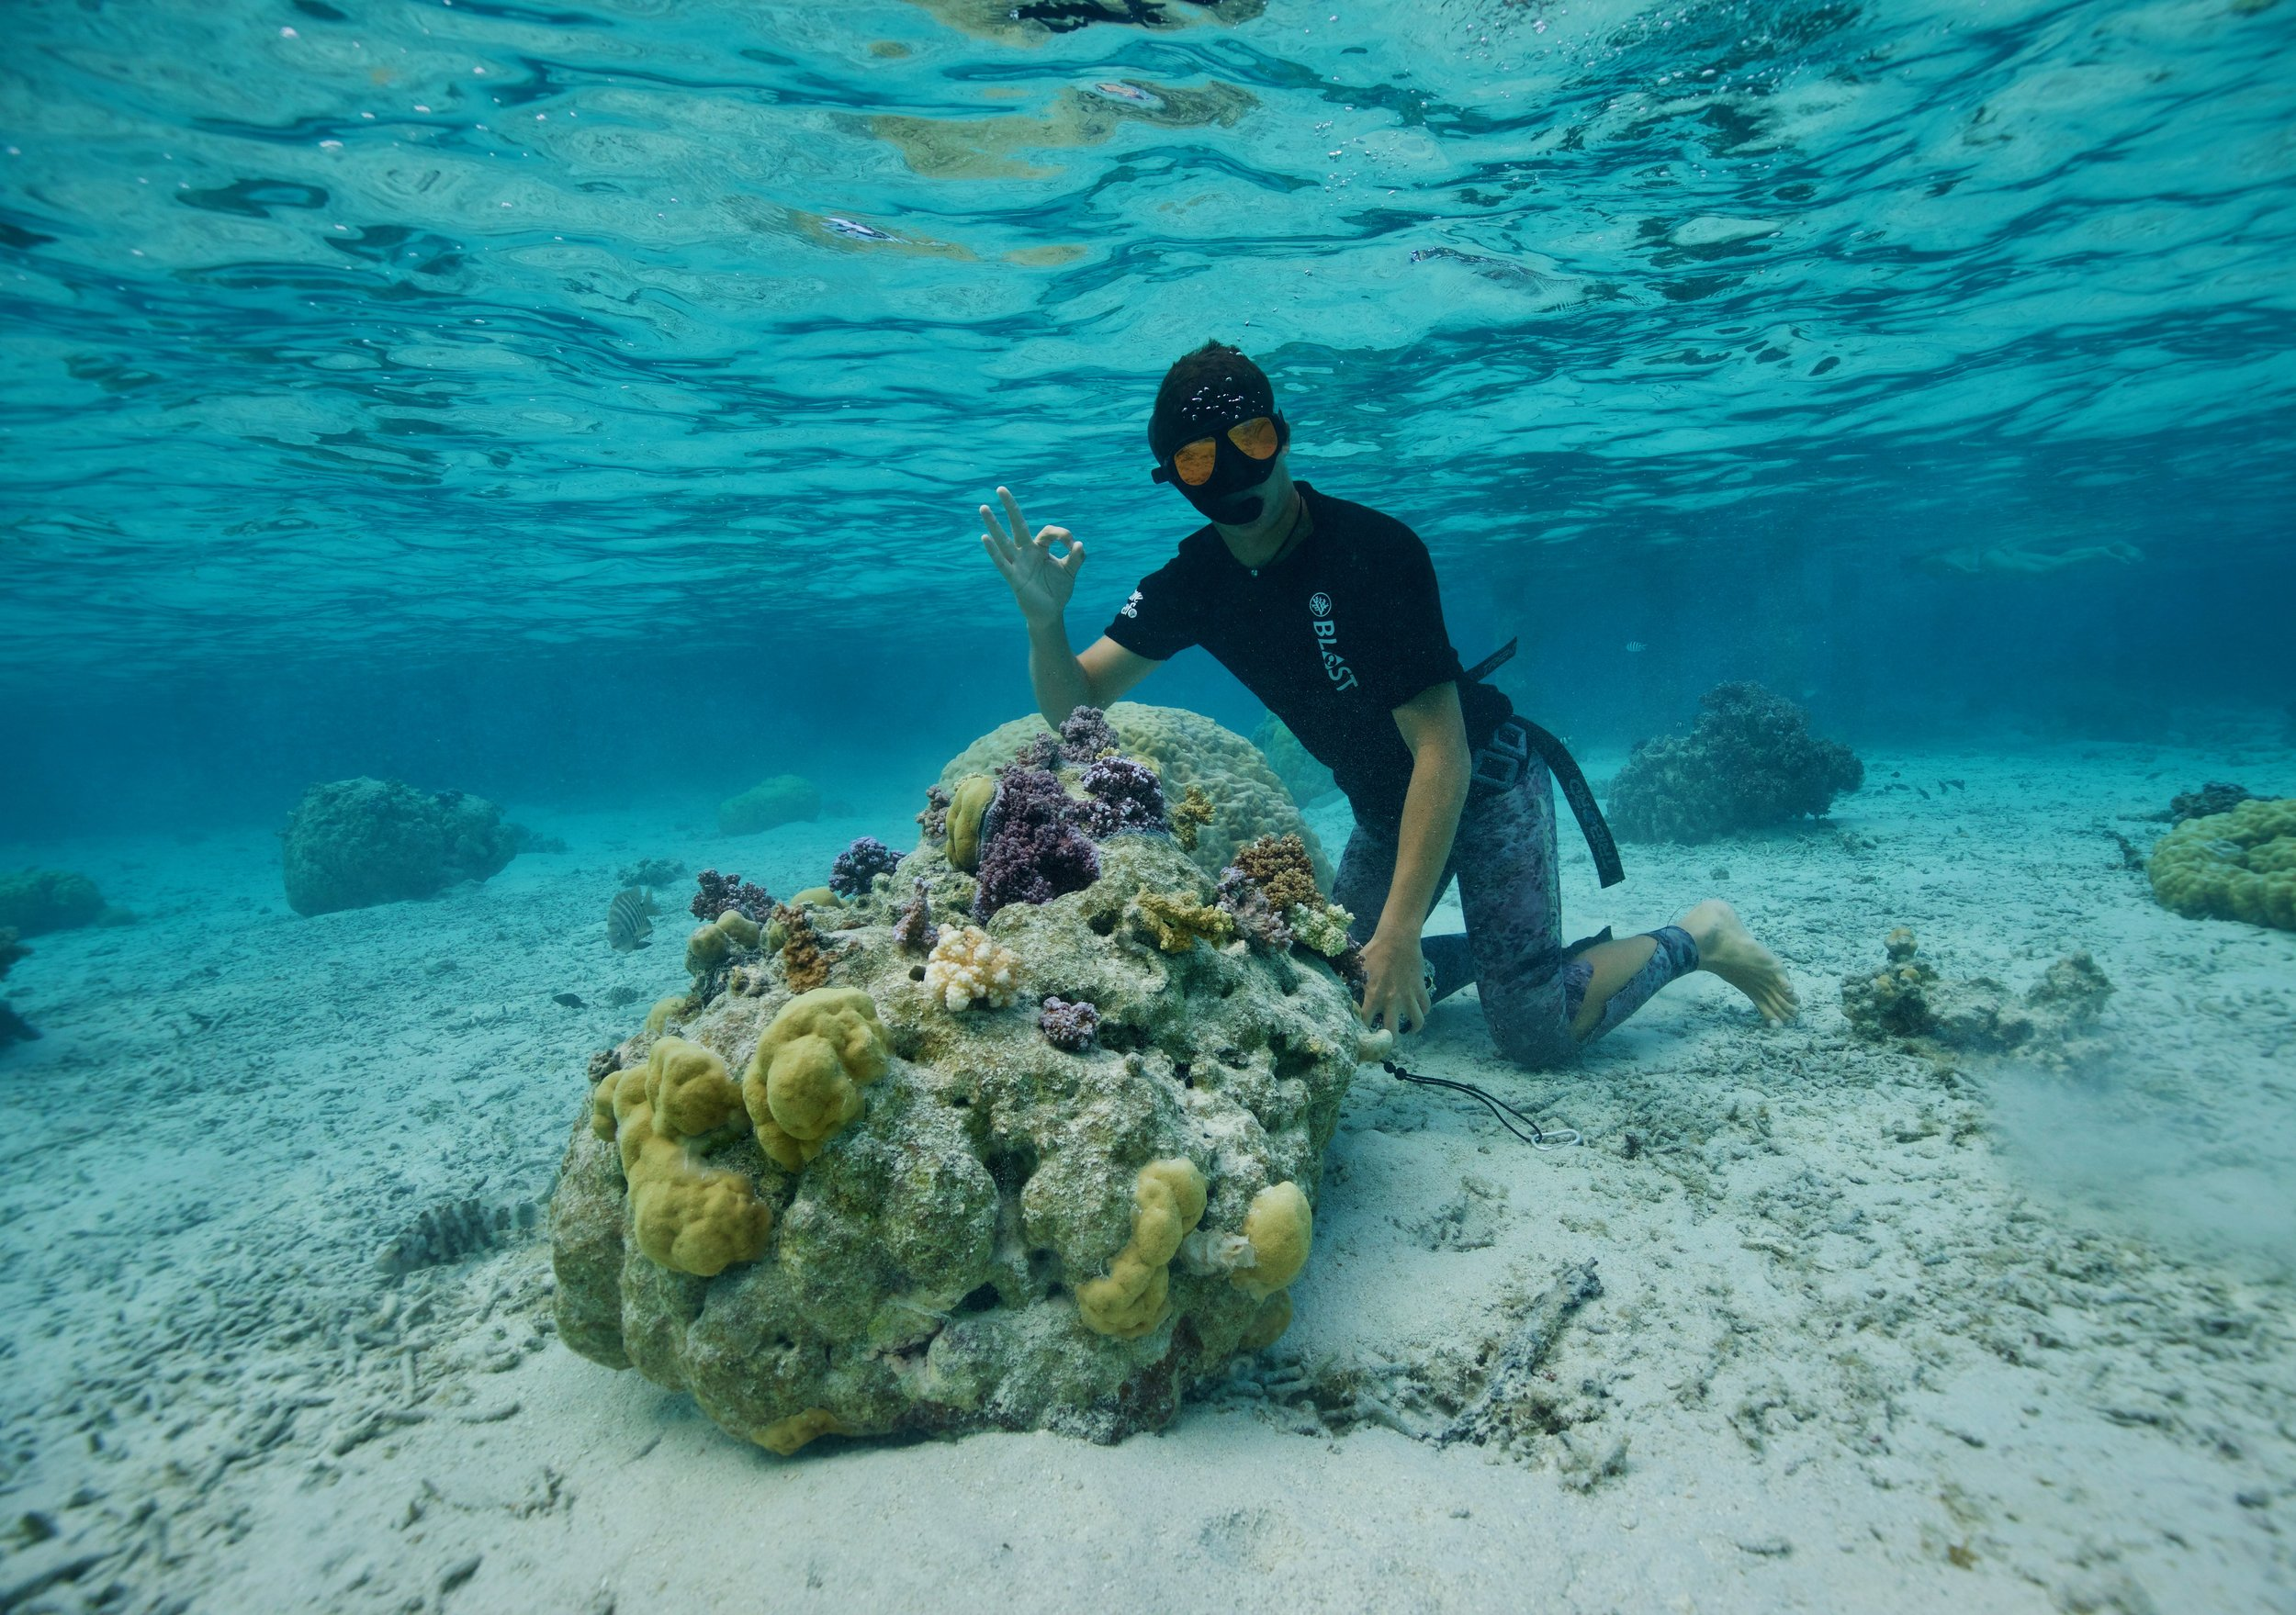 Photo: Moorea Coral Gardeners. Creating new reefs by transplanting coral cuttings into threatened areas.